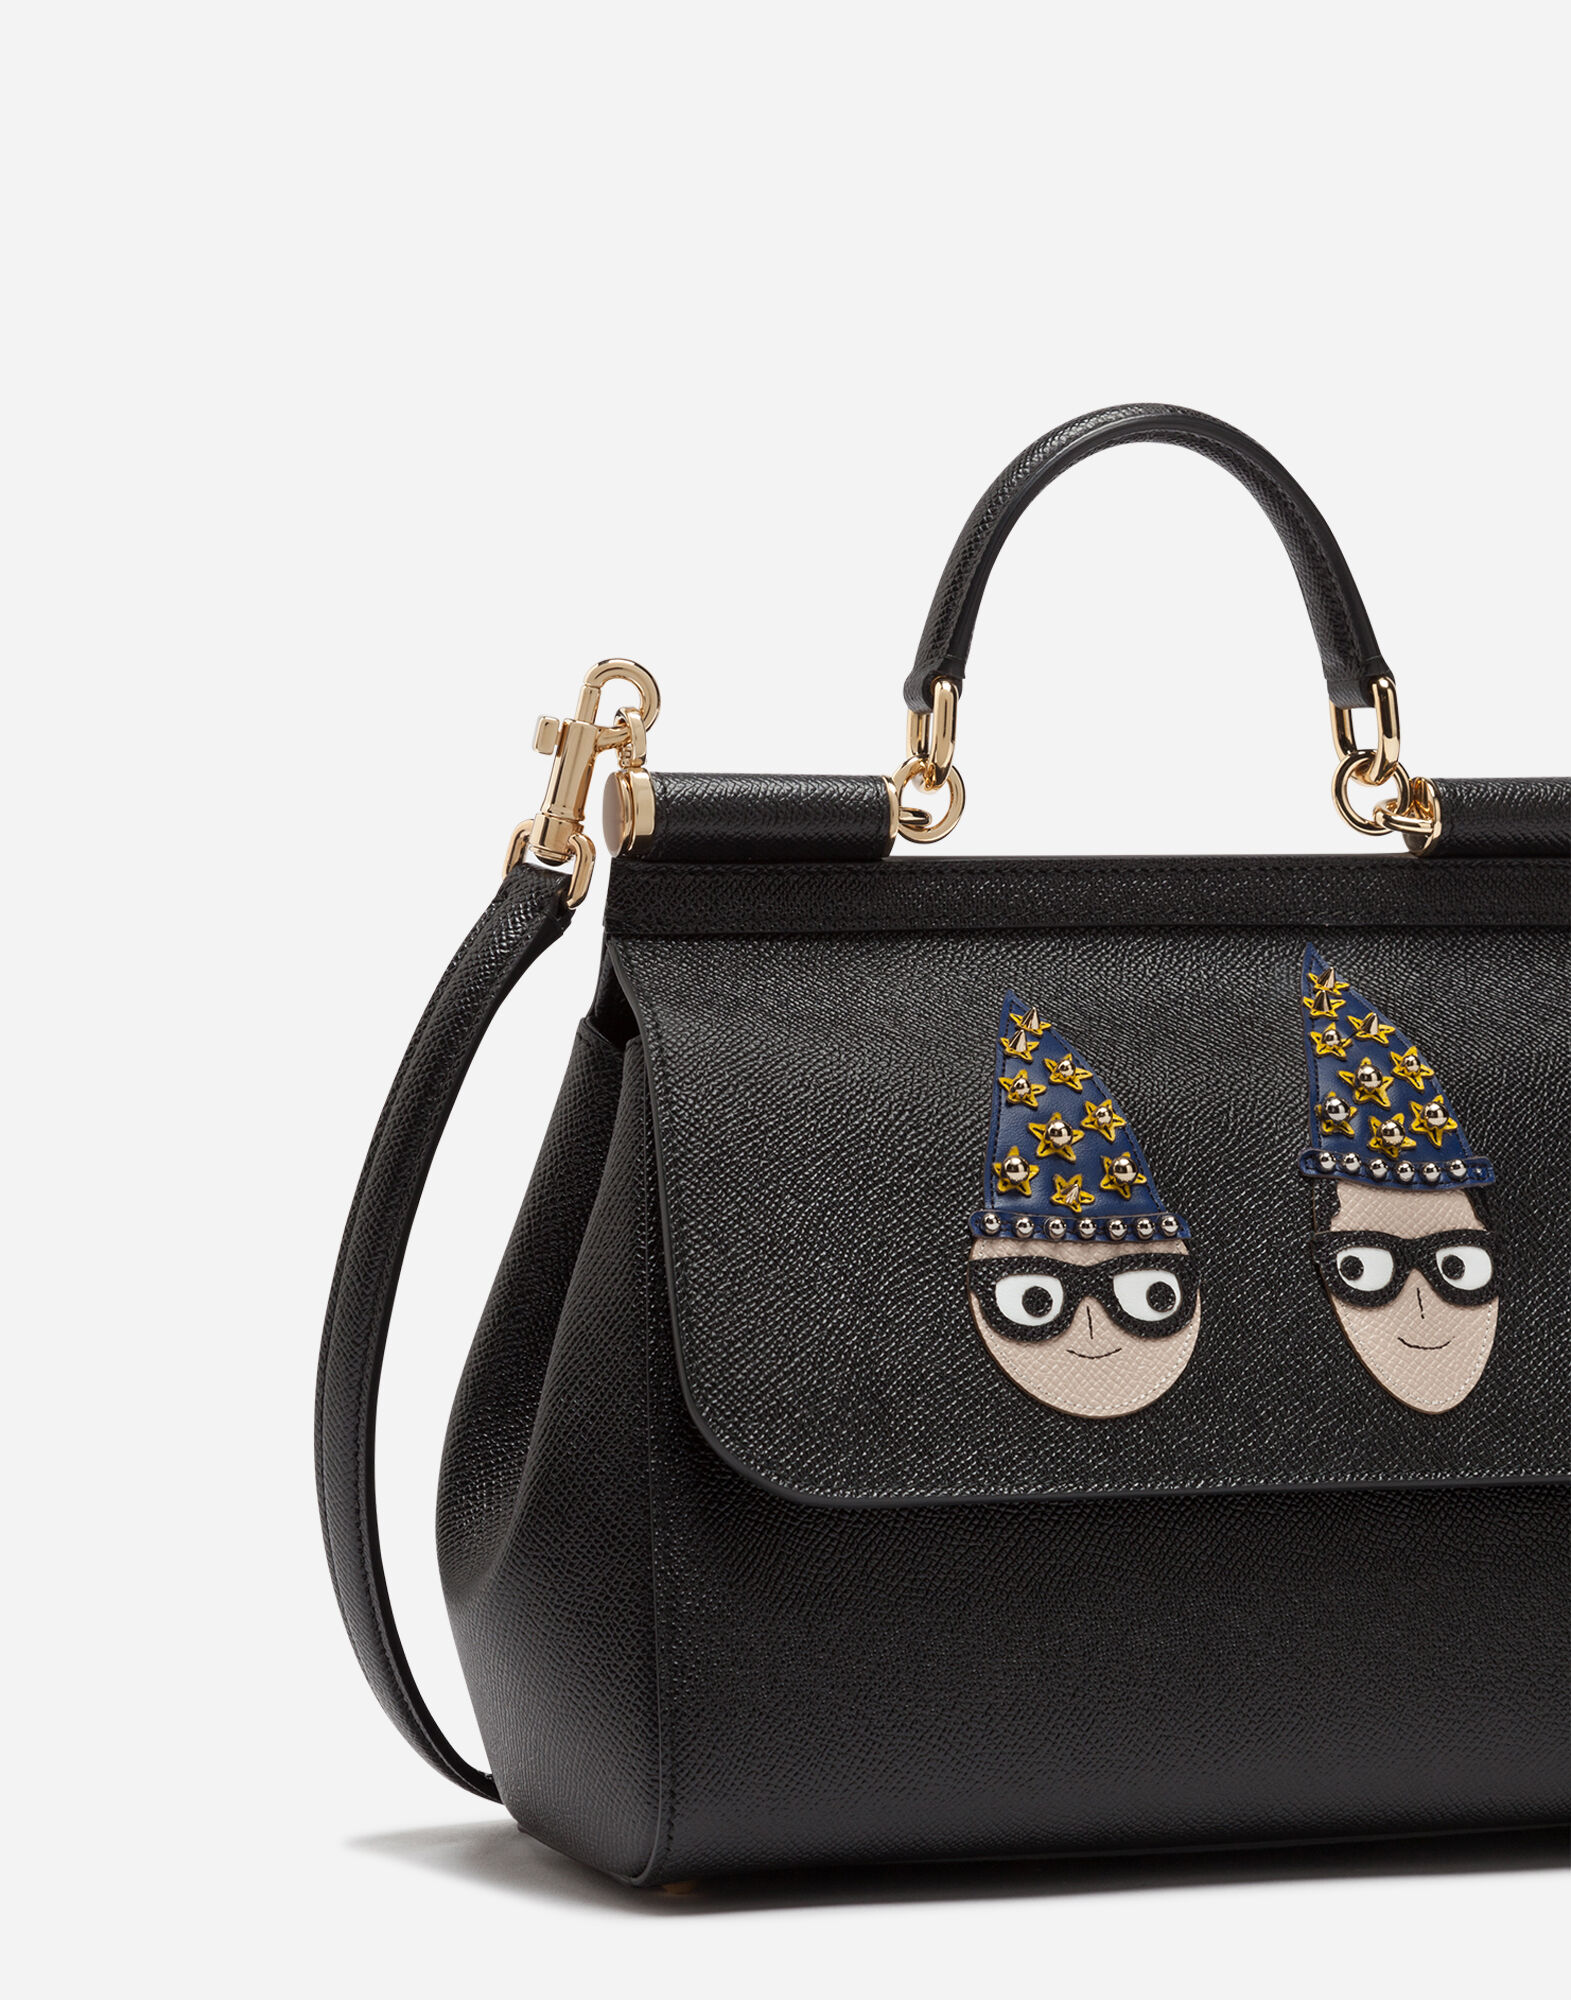 6d2cb5769b3 Dolce   Gabbana Medium Sicily Bag In Dauphine Calfskin With Patches Of The  Designers In Black